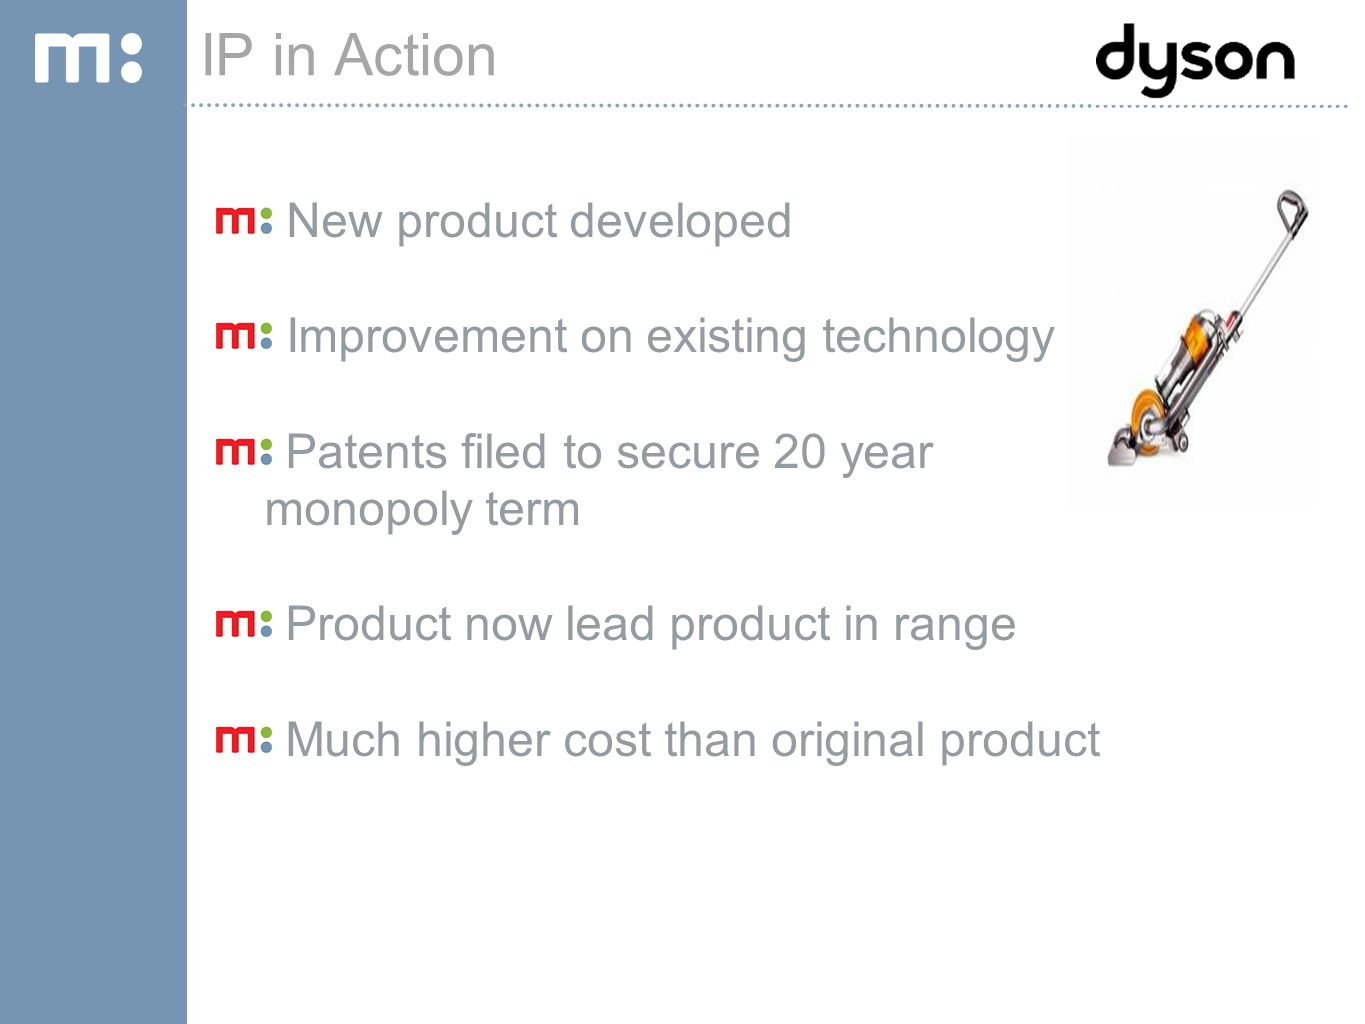 IP PORTAL TOUR IP in Action New product developed Improvement on existing technology Patents filed to secure 20 year monopoly term Product now lead product in range Much higher cost than original product